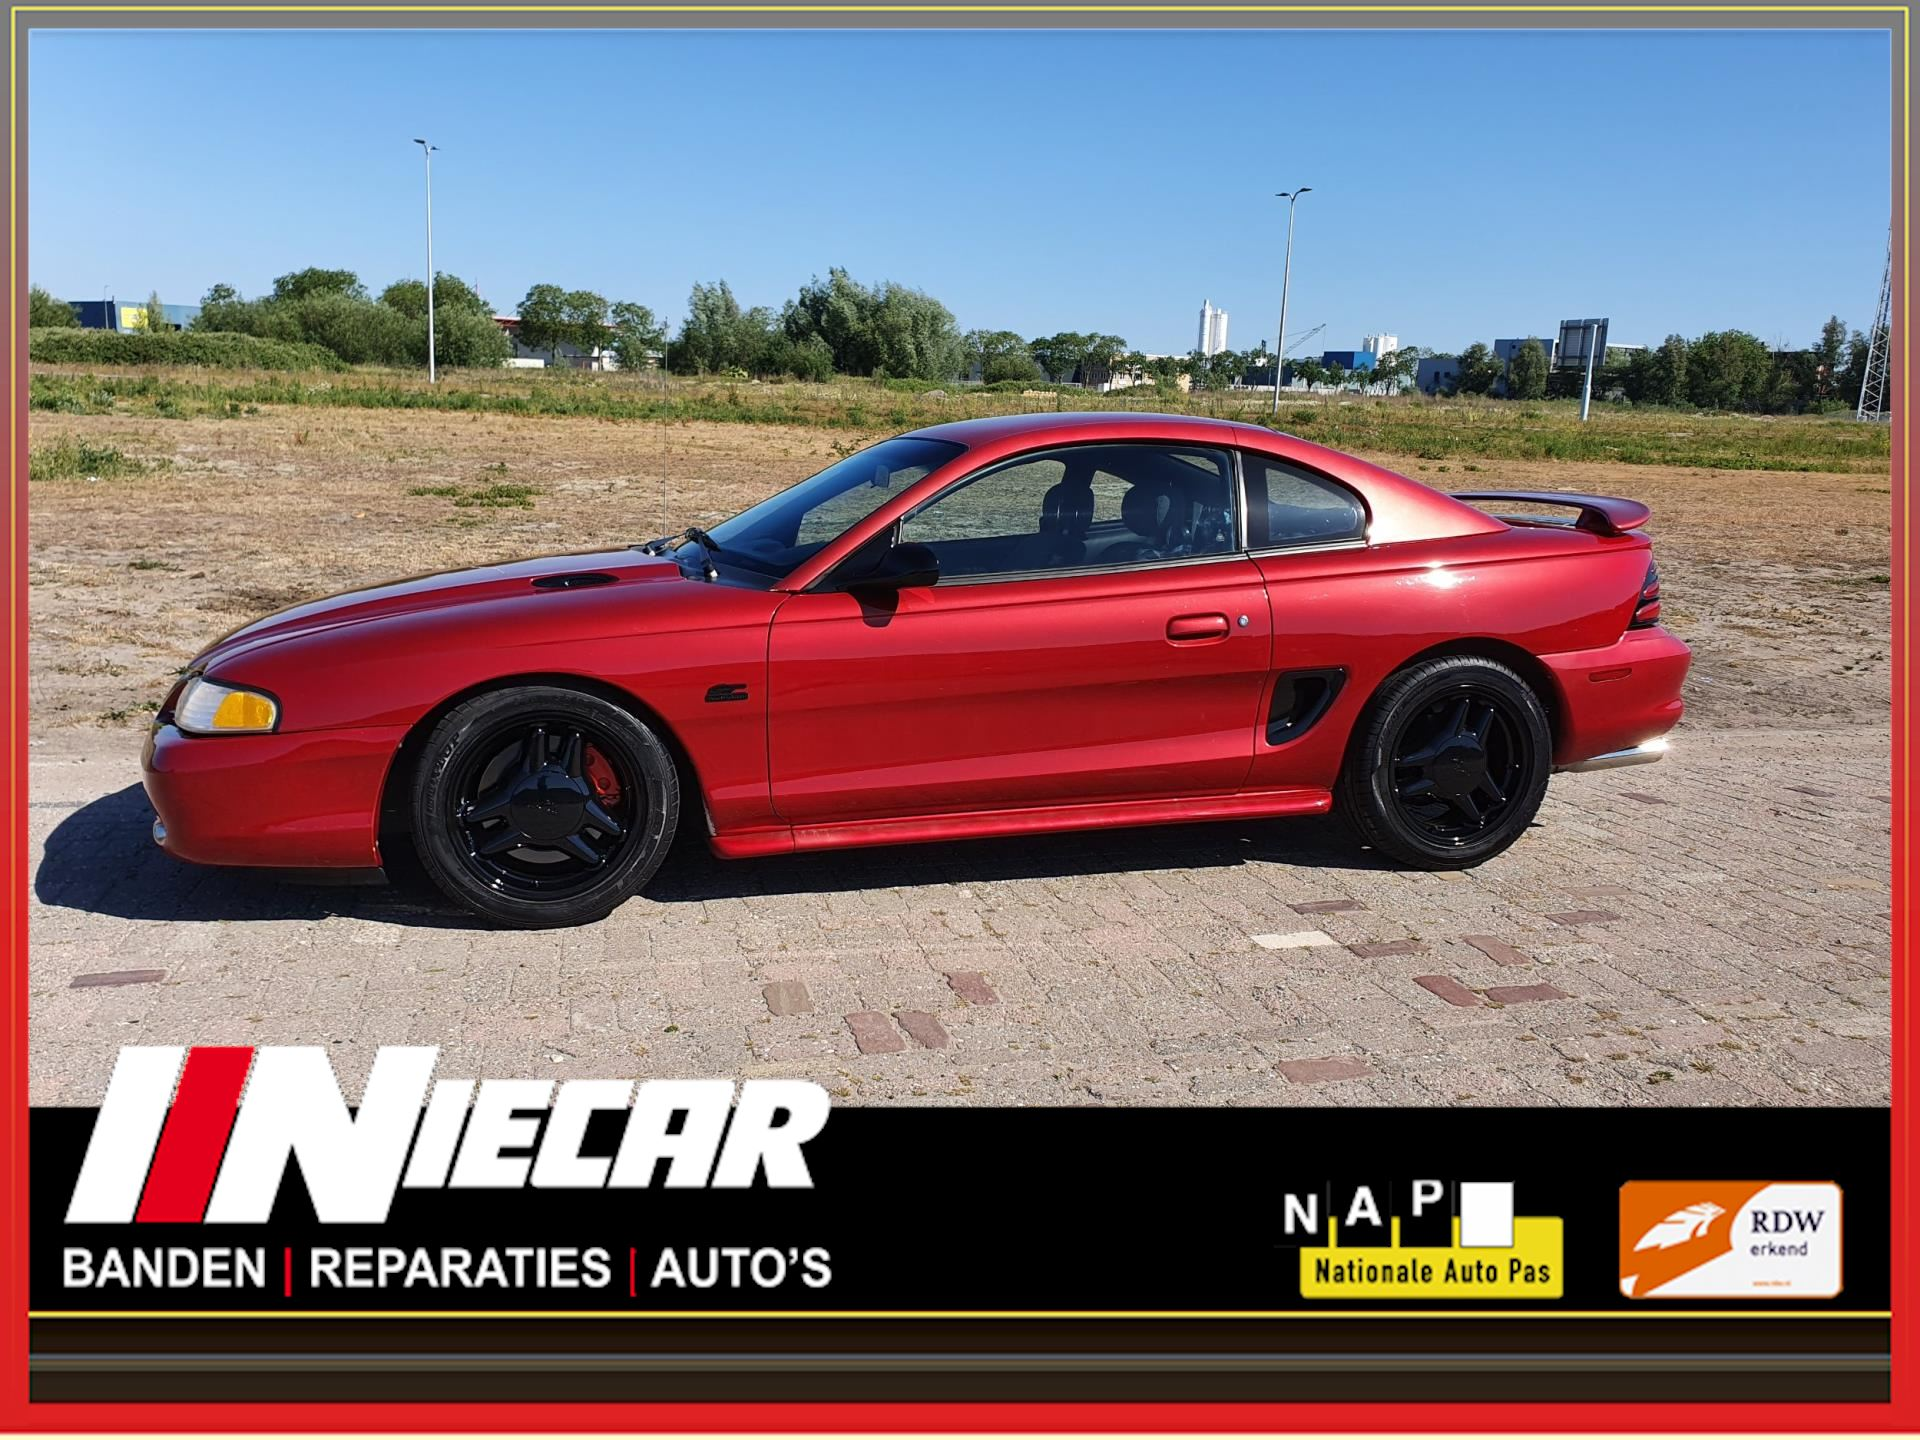 Ford MUSTANG occasion - Niecar